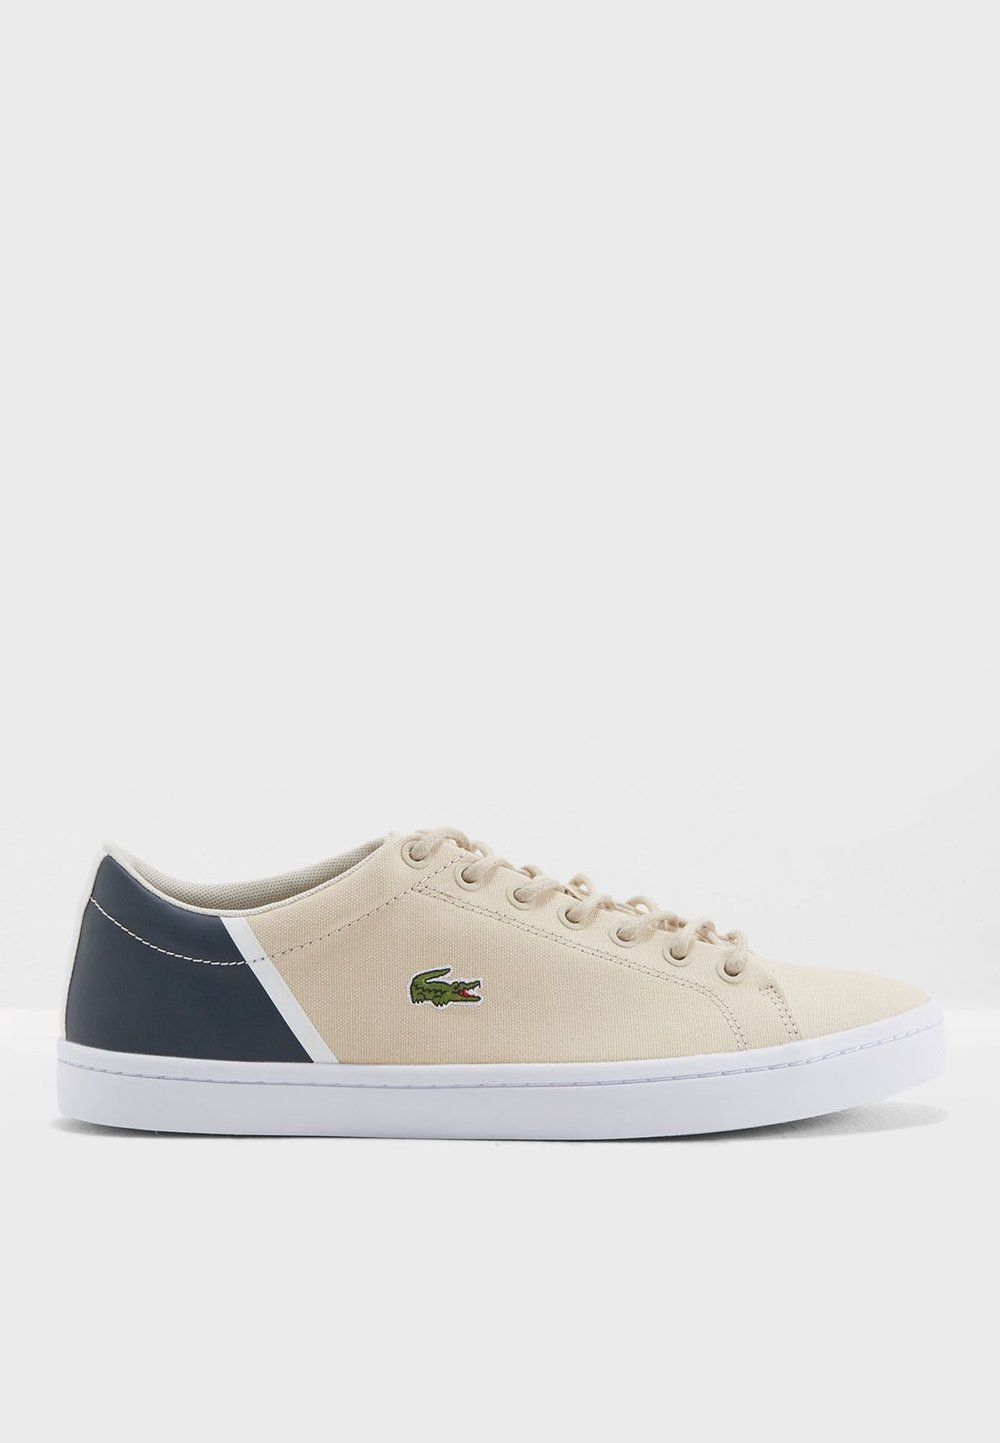 455 AED Lacoste